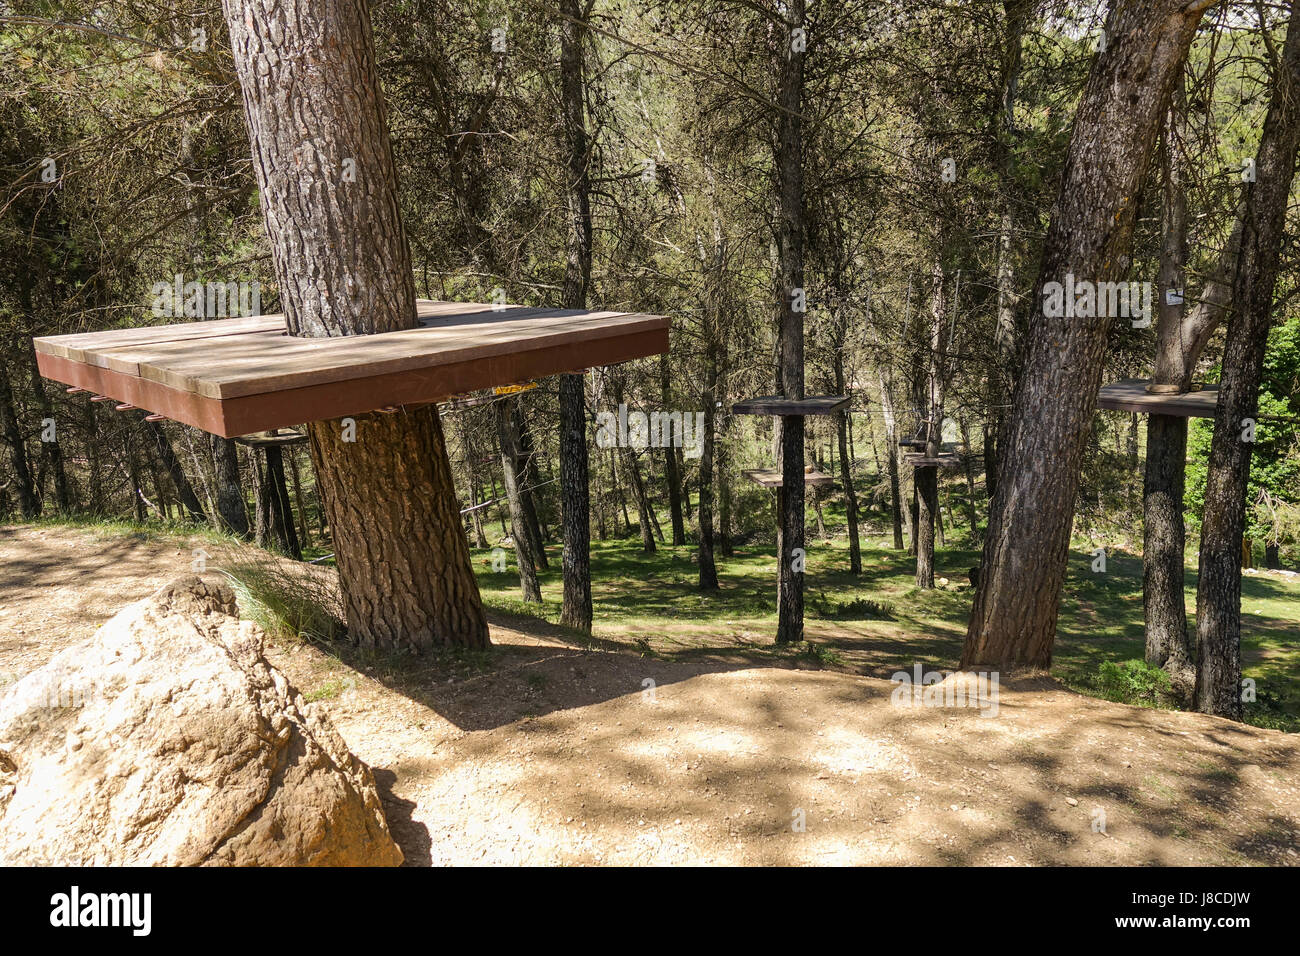 Wooden platforms in pine trees, rope course in the tree canopy, canopy ropes and ziplane park, Andalusia, Spain. - Stock Image